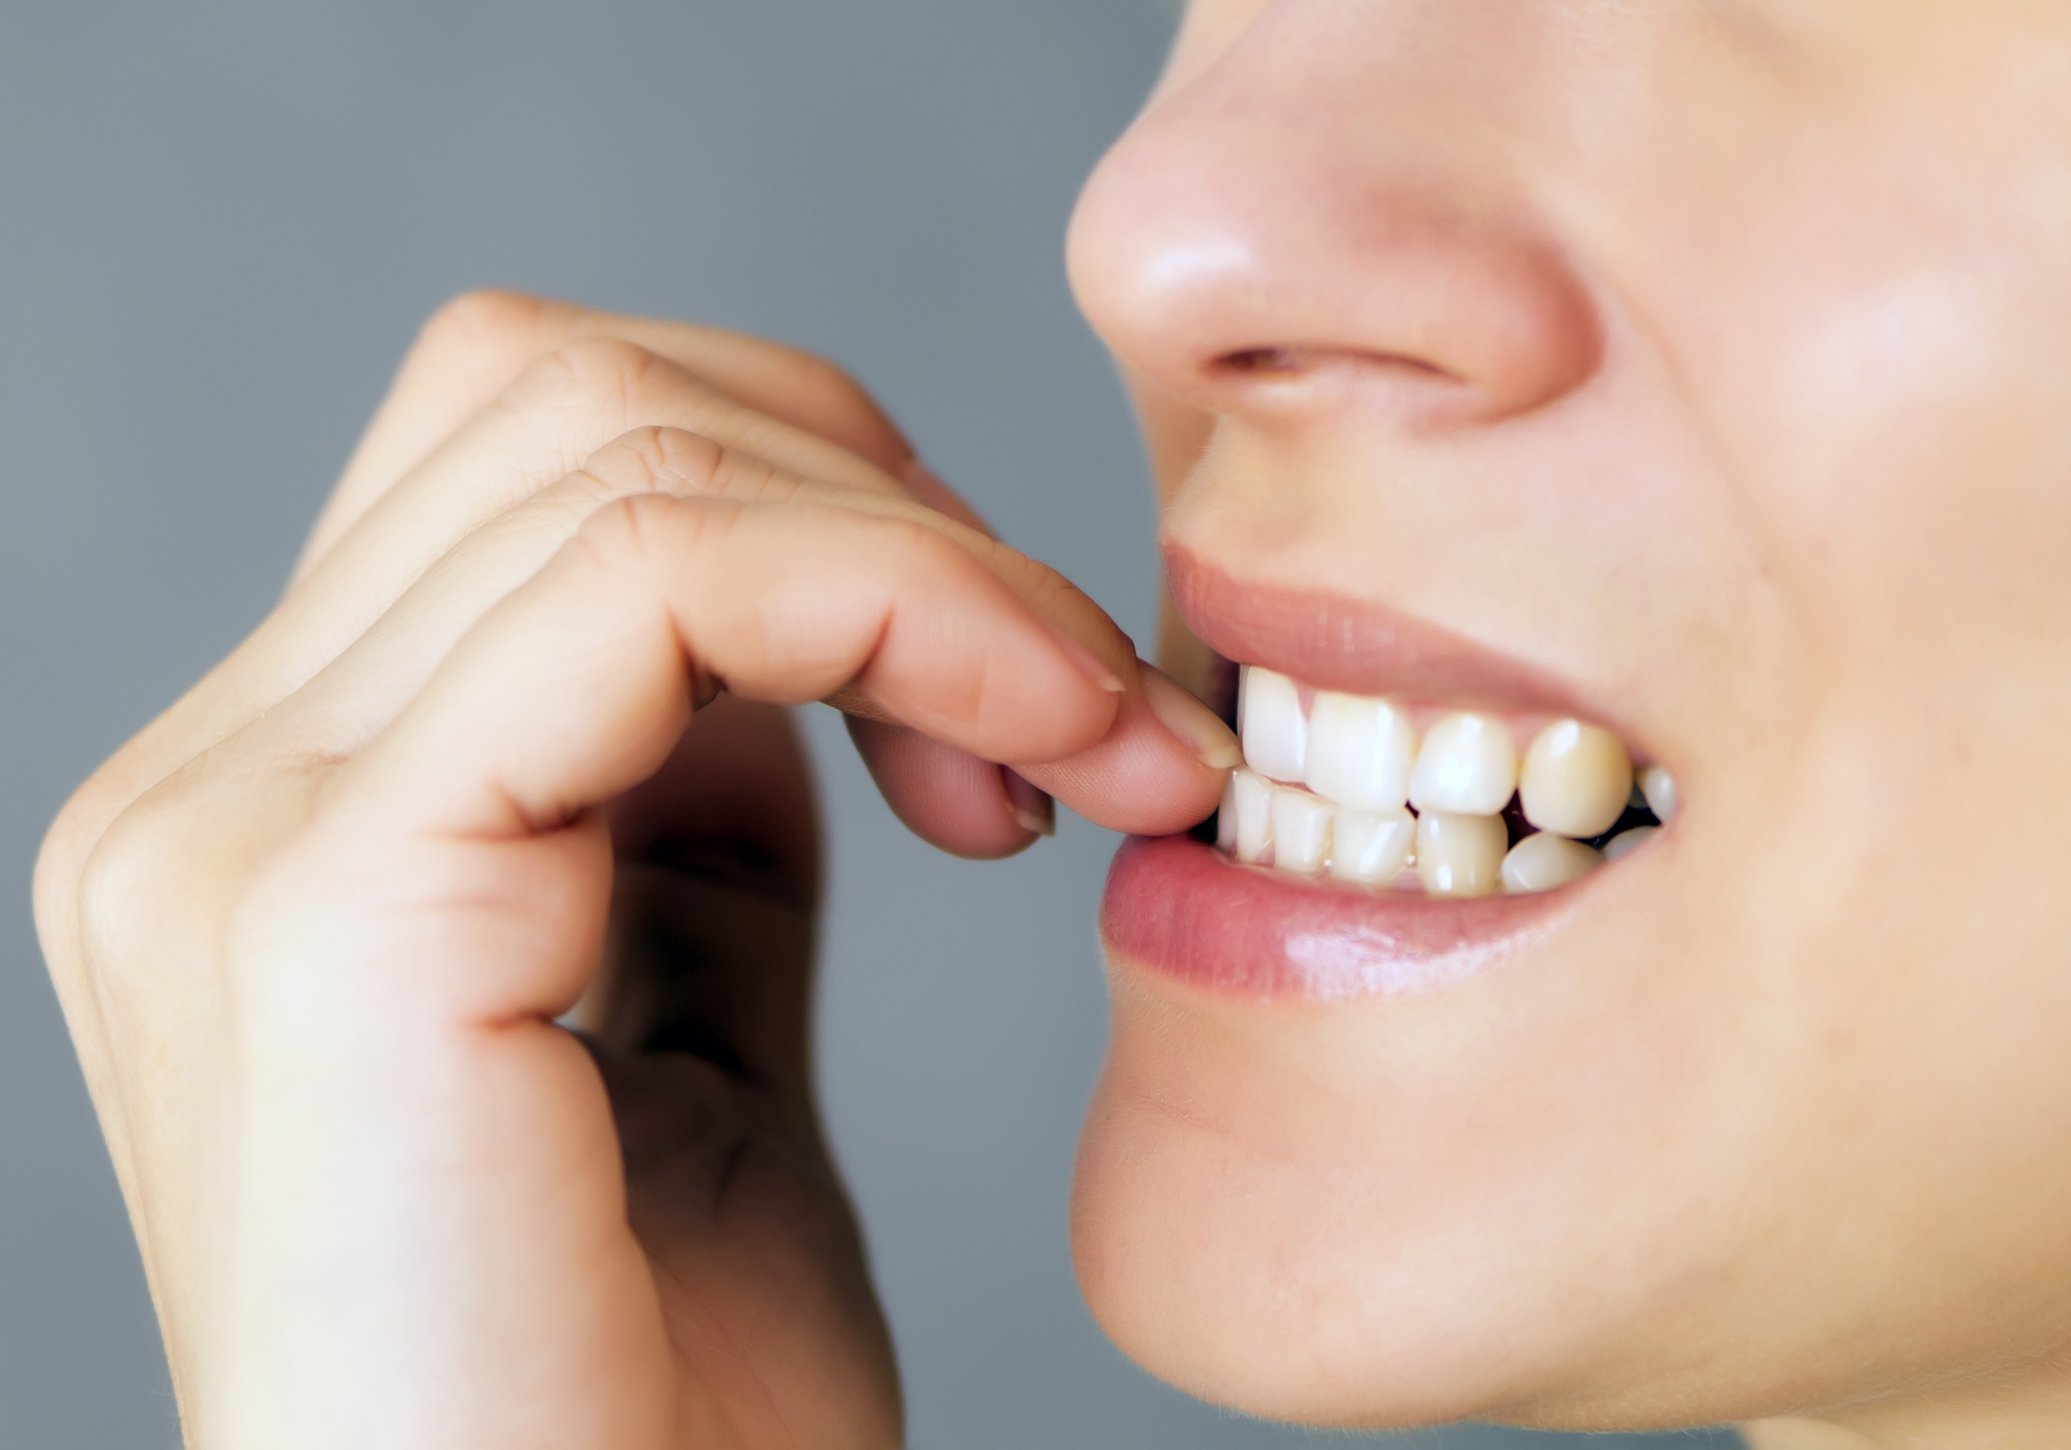 Disorders With Symptoms of Nail Biting   LIVESTRONG.COM